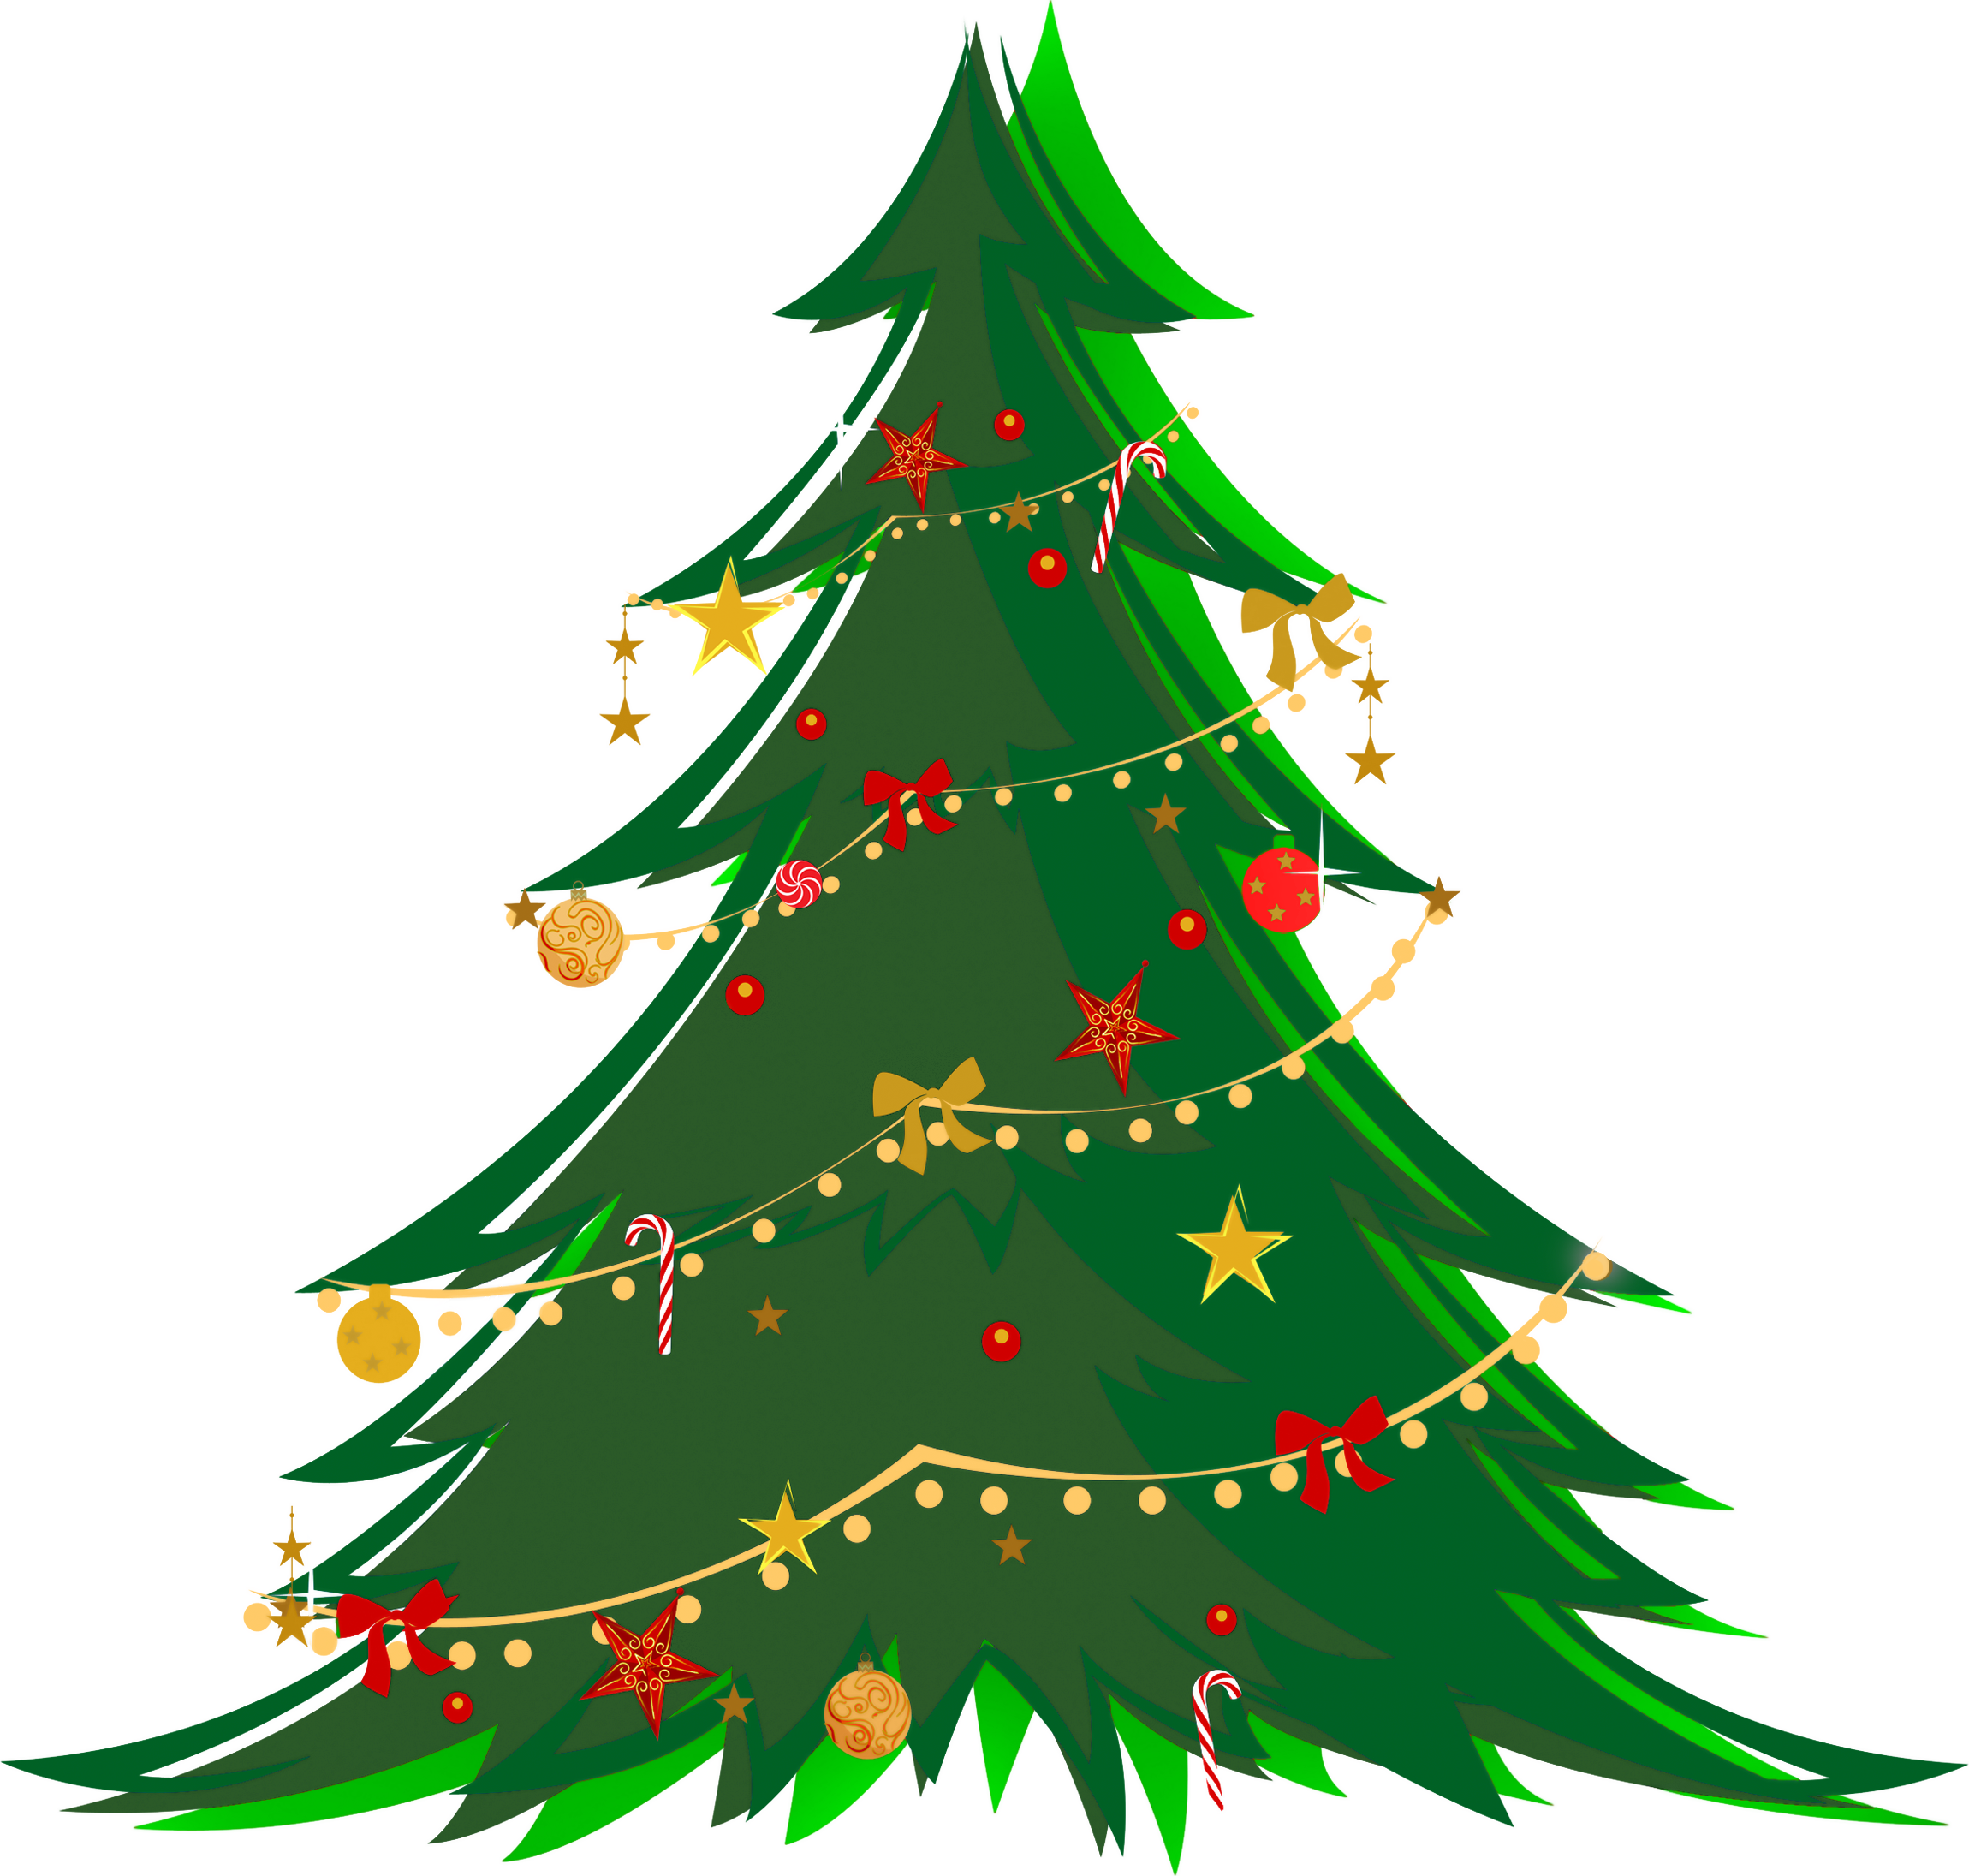 Christmas clipart transparent backgrounds clip art royalty free library Free Transparent Christmas Cliparts, Download Free Clip Art, Free ... clip art royalty free library